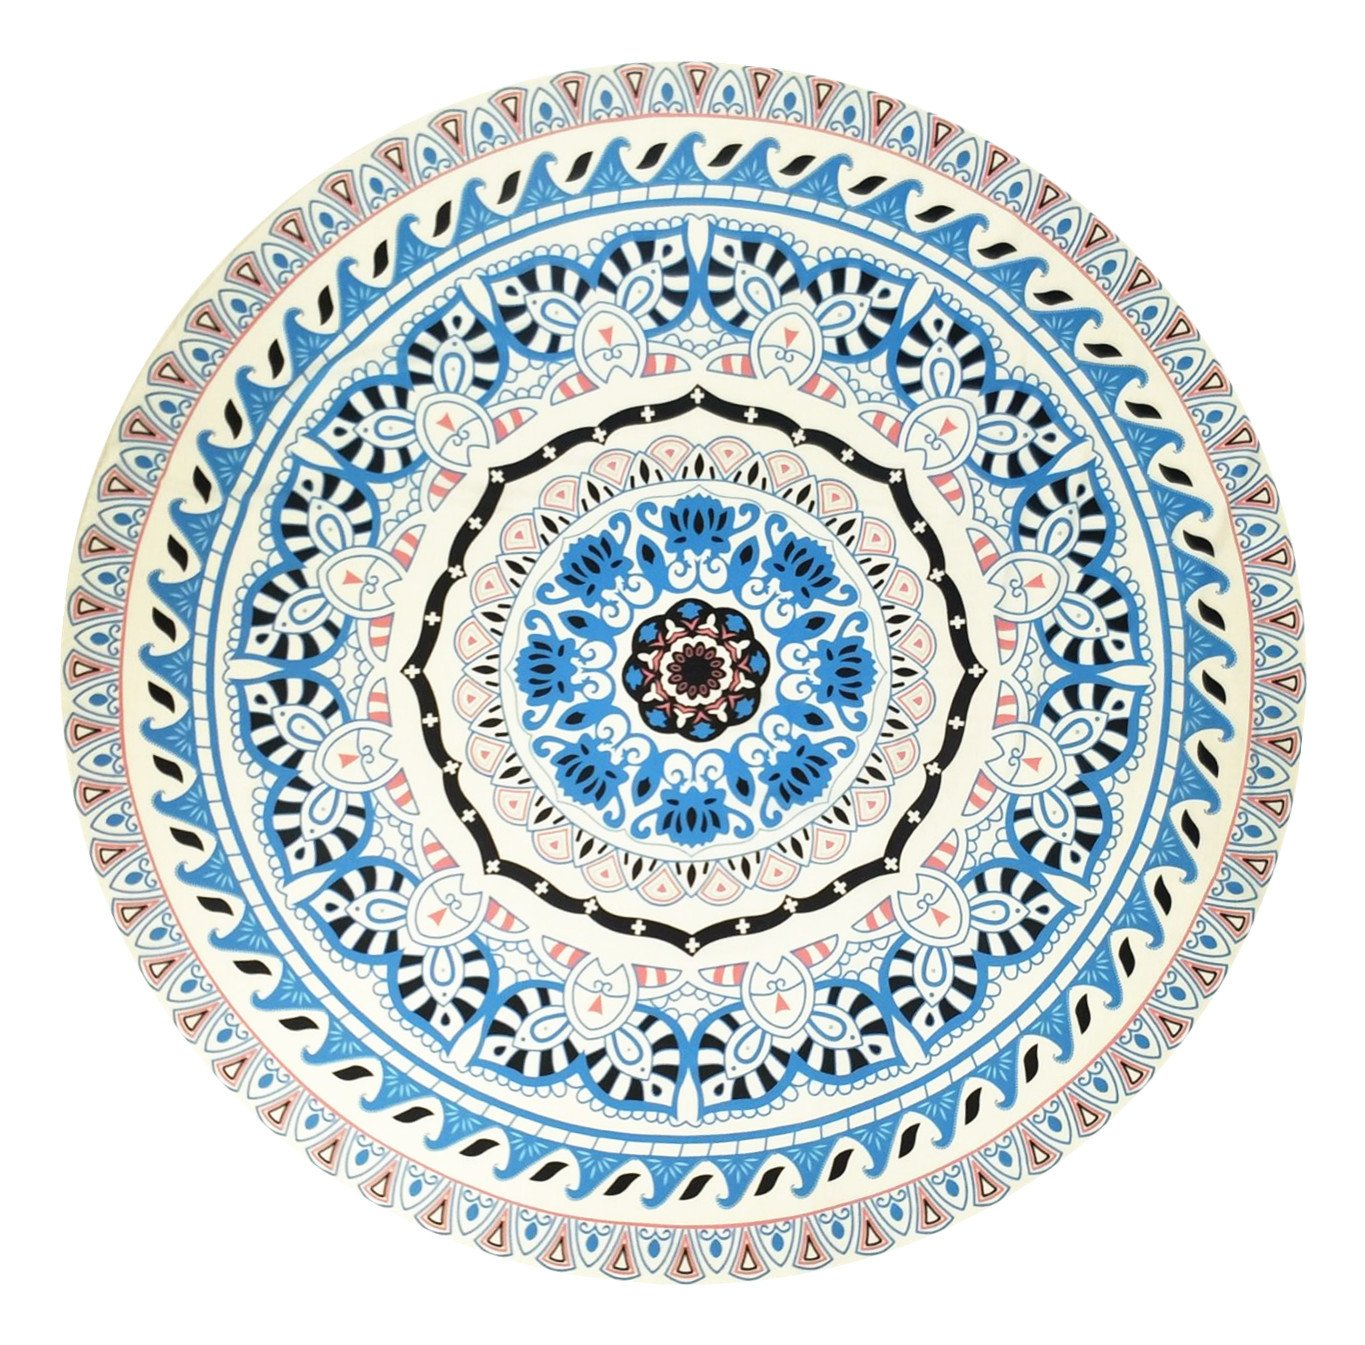 Amazon.com: Indian Mandala Microfiber Large Round Beach Blanket with Tassels Ultra Soft Super Water Absorbent Multi-Purpose Towel: Home & Kitchen